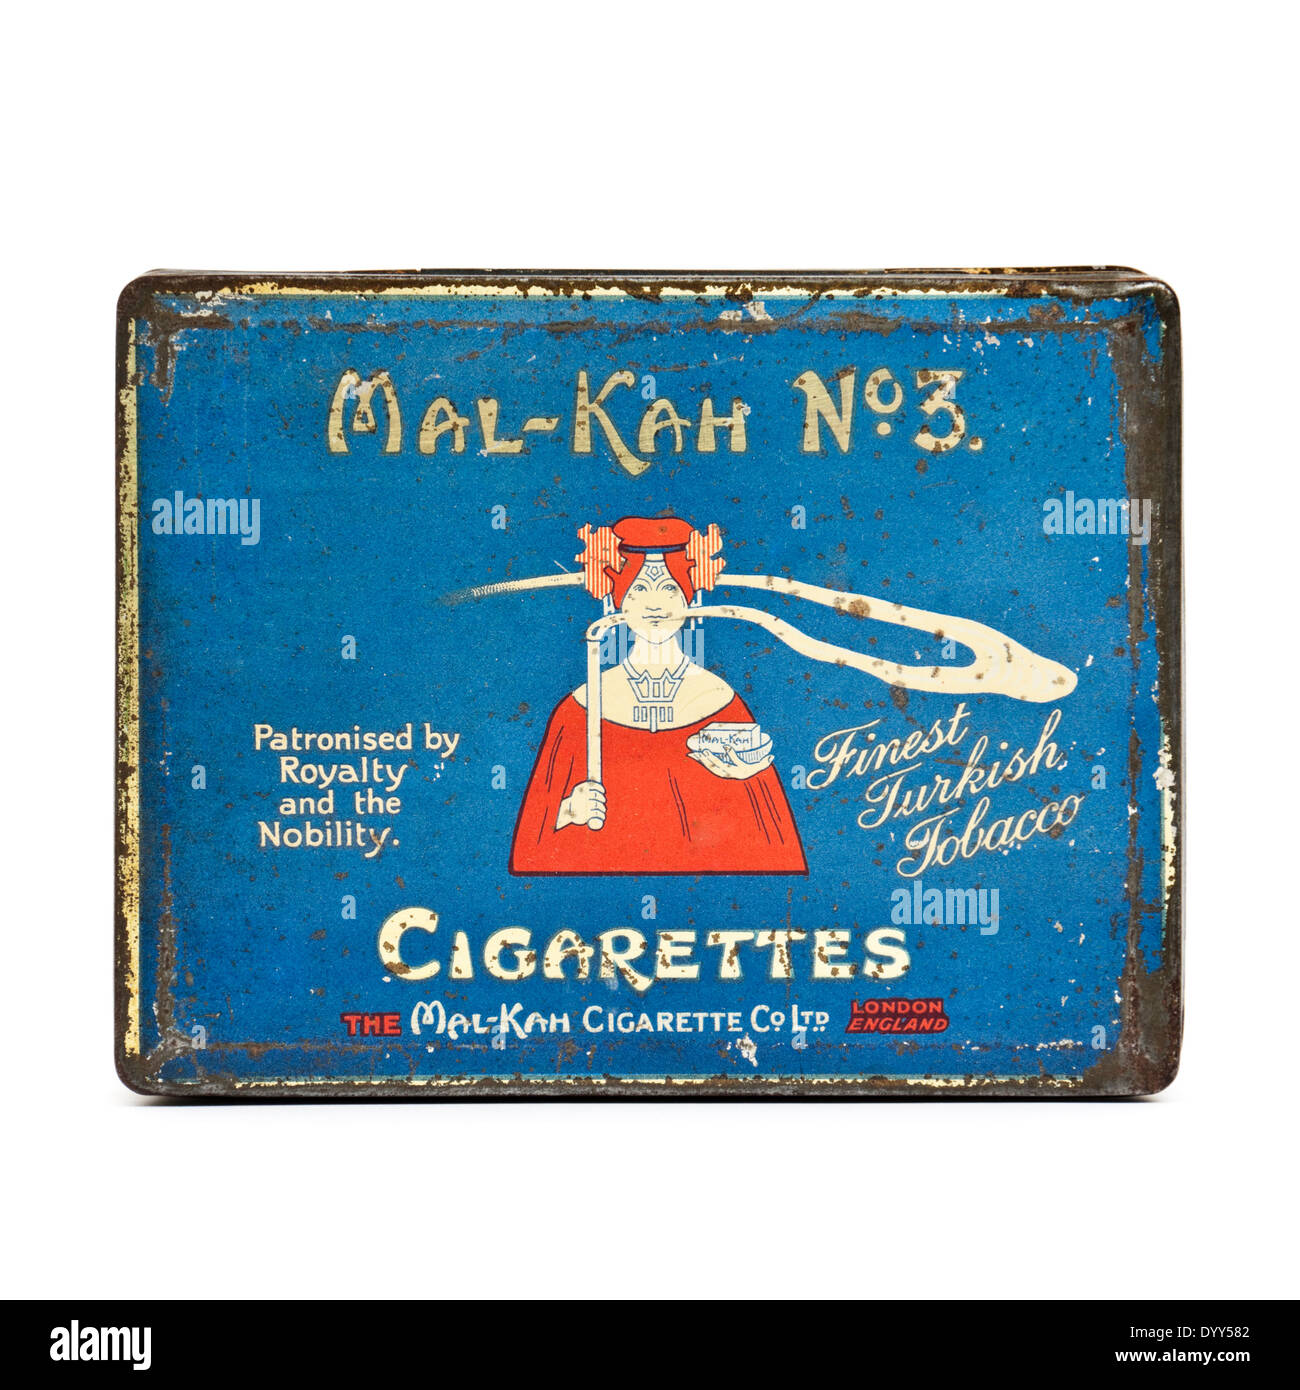 Really. was vintage cigarette tins think